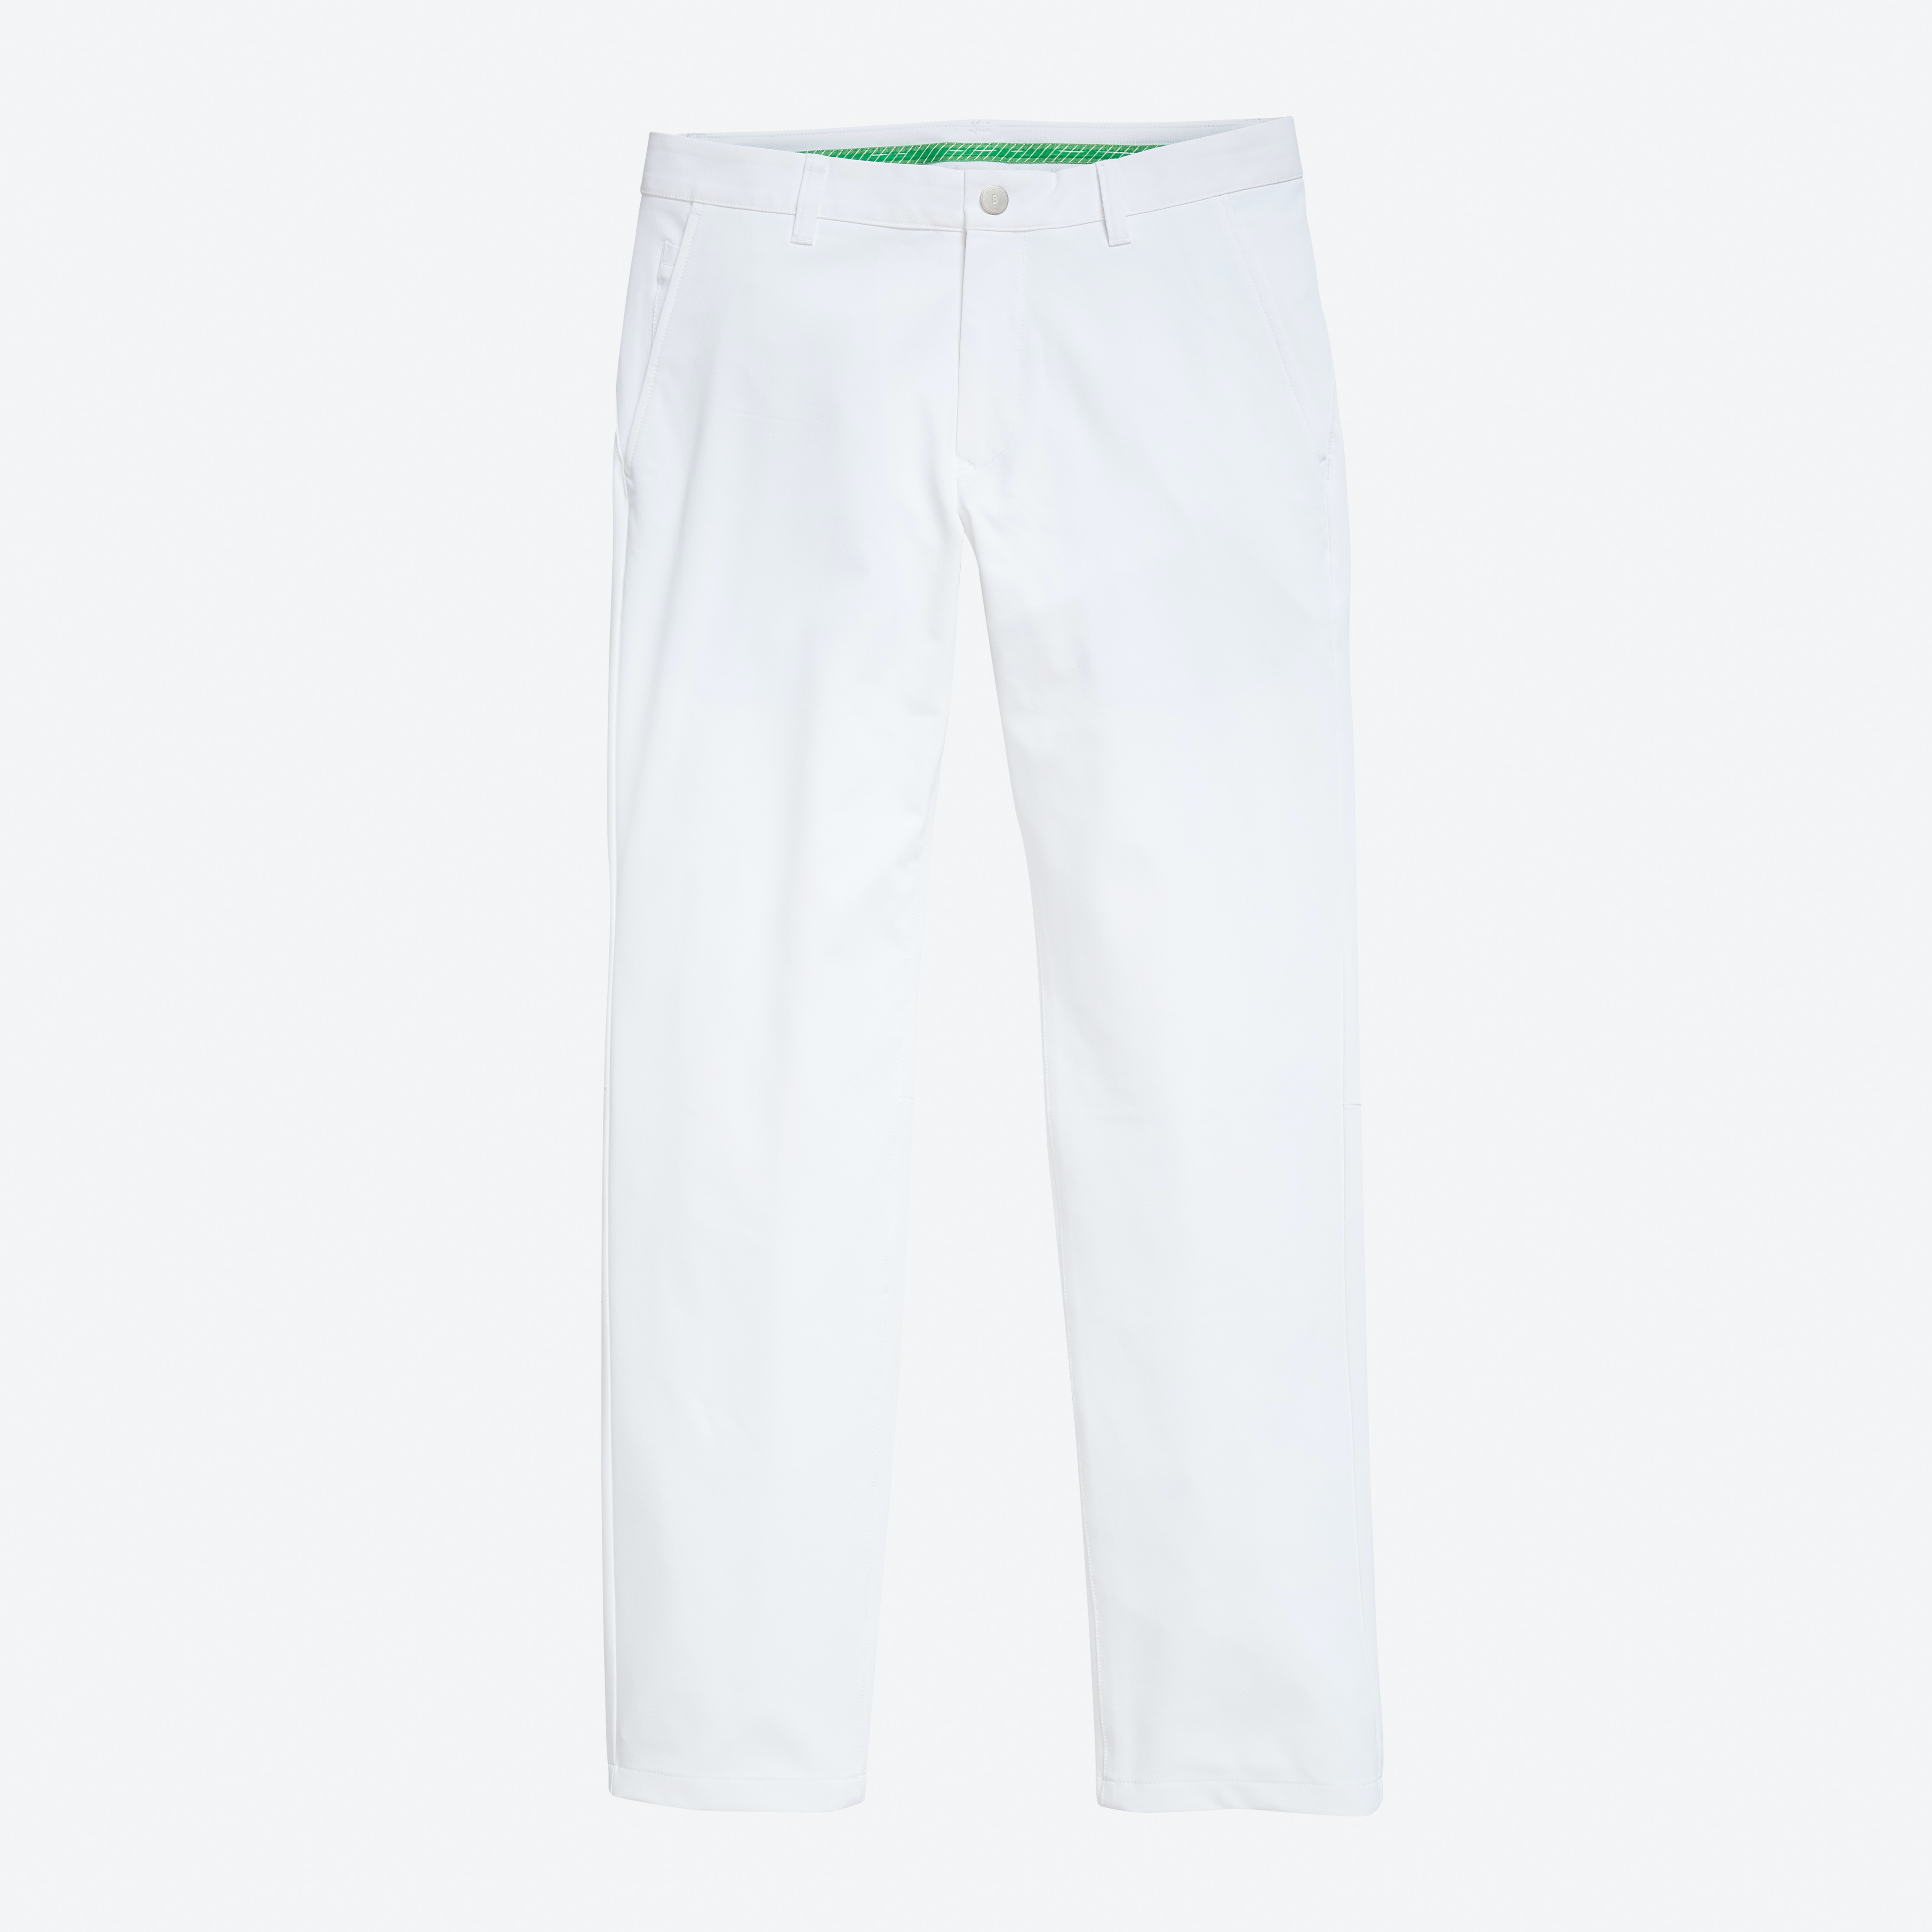 Highland Tour Golf Pants